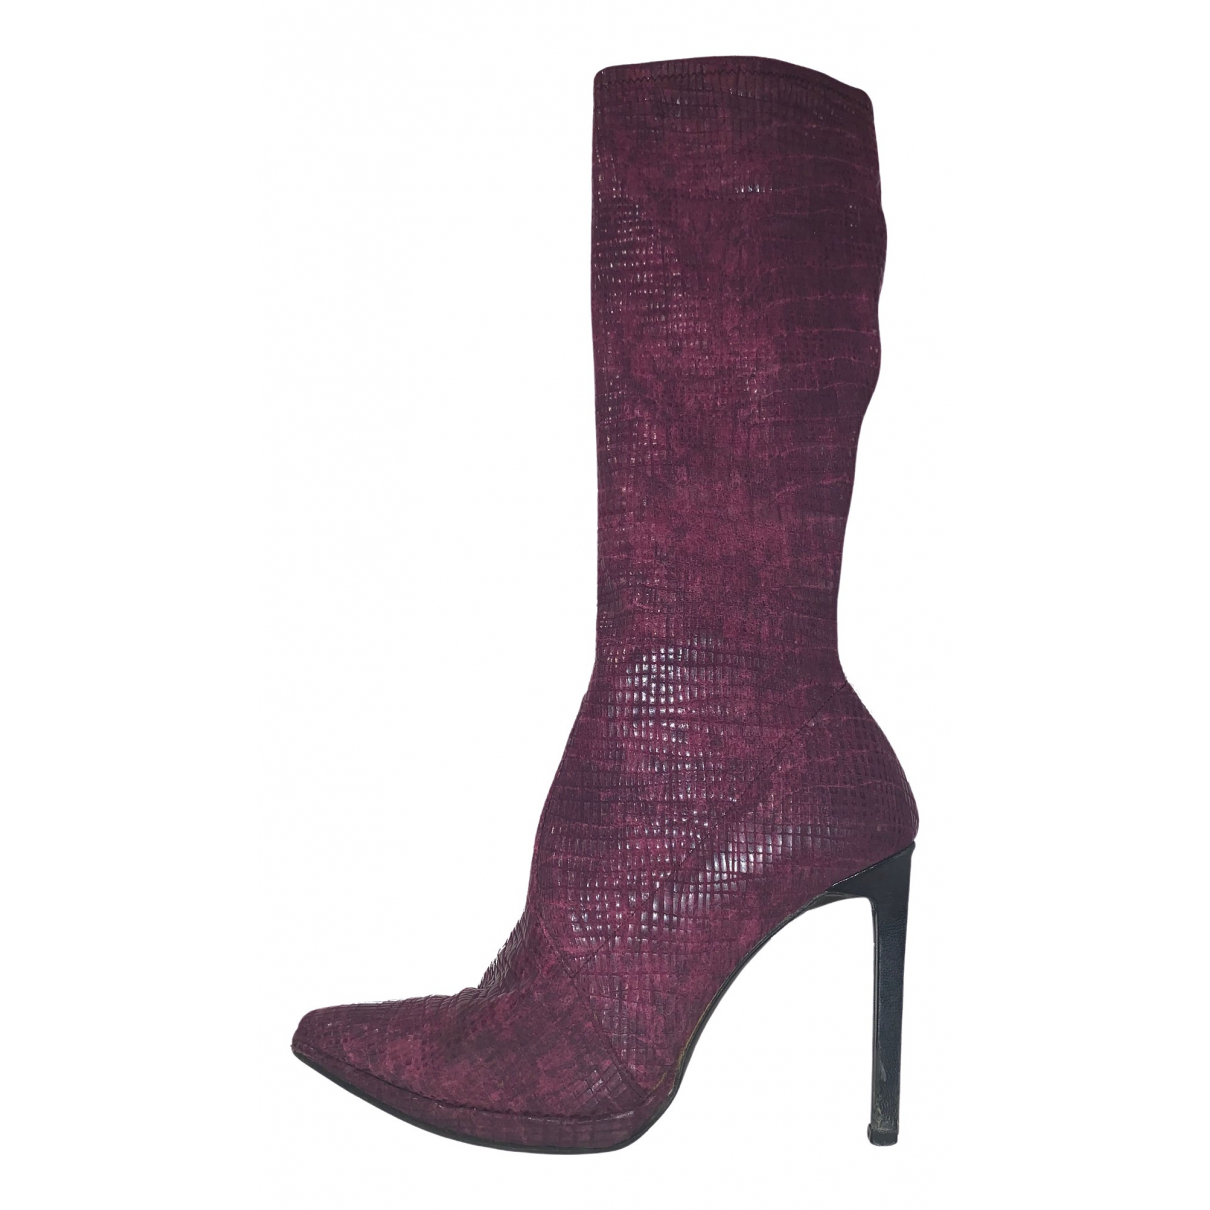 Casadei \N Burgundy Boots for Women 38.5 IT